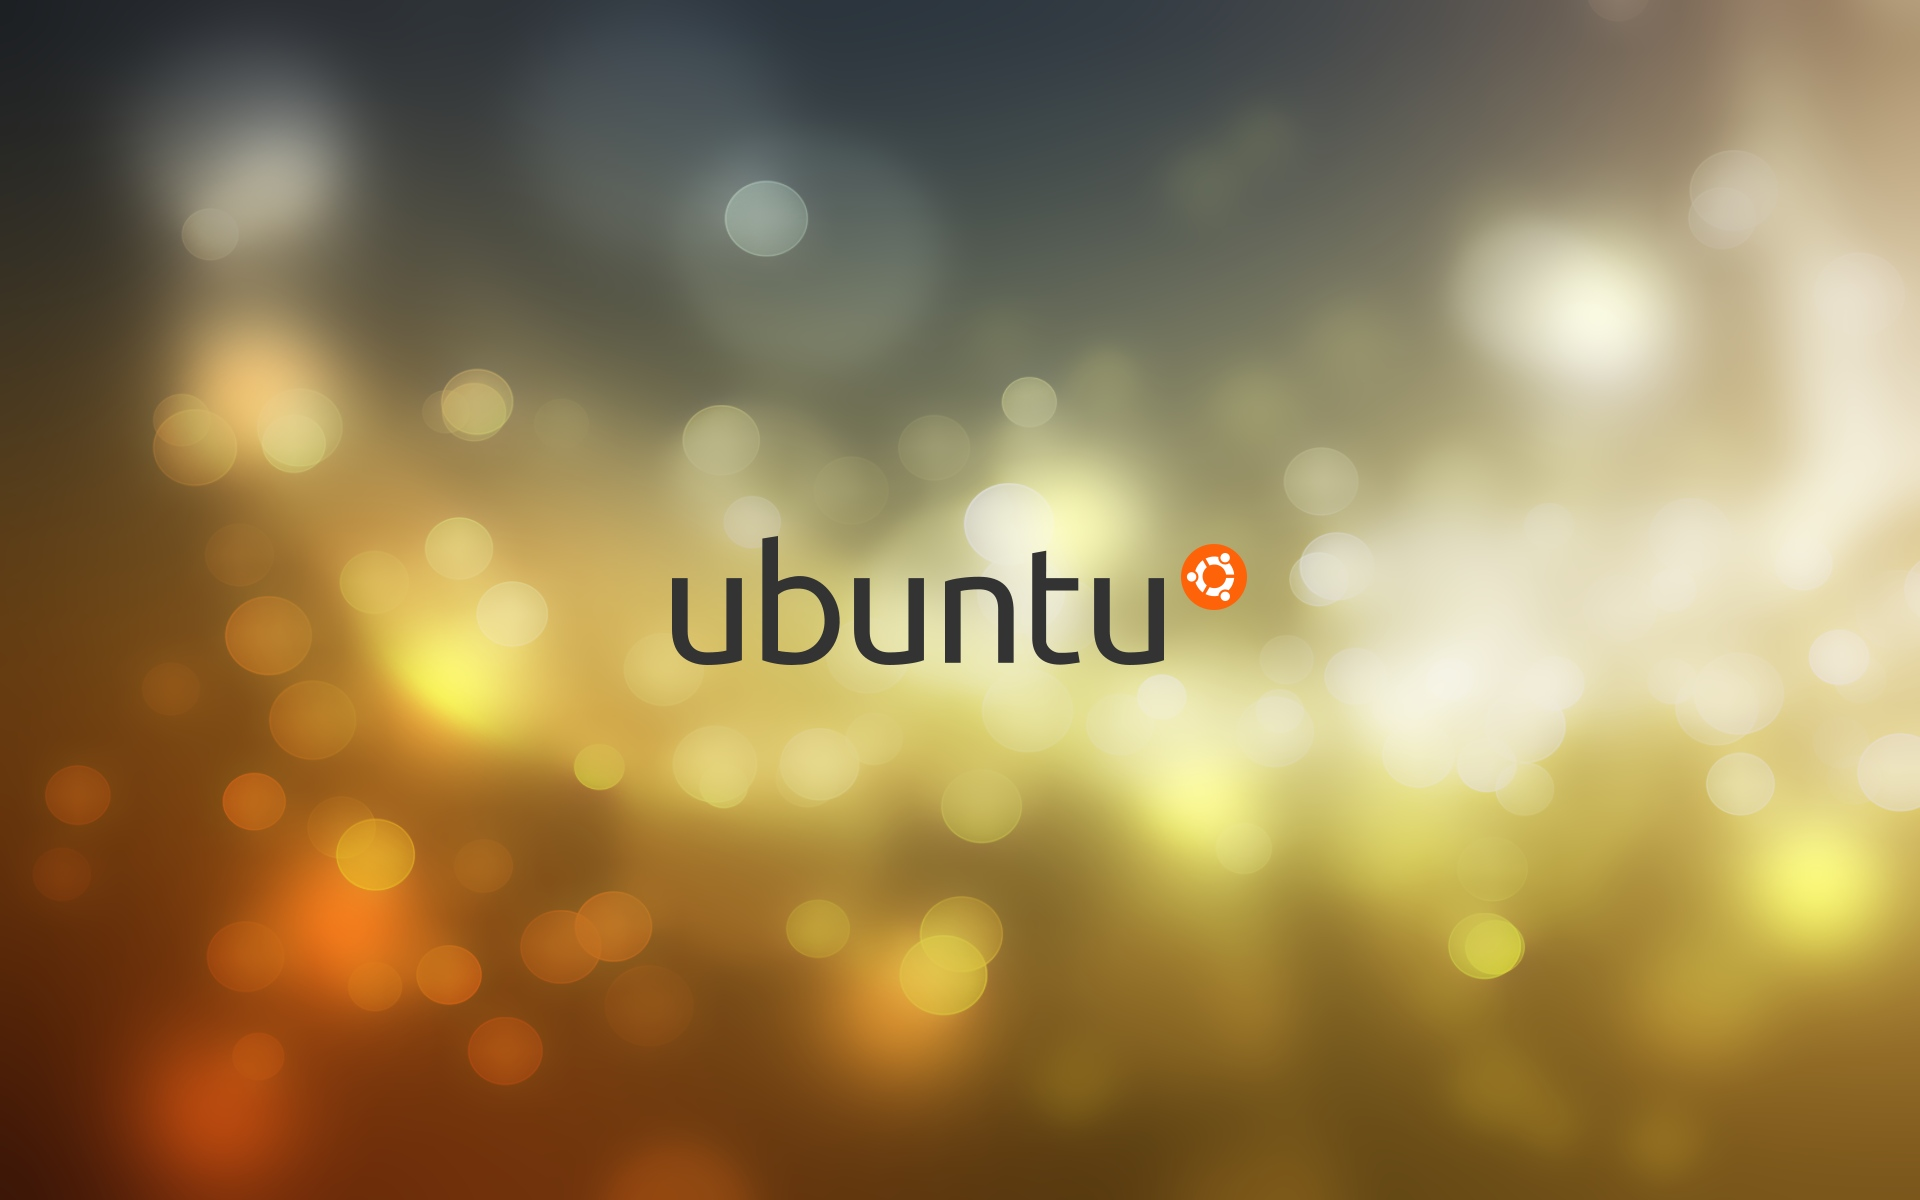 Ubuntu Desktop Wallpaper Girl 1920 1920x1200